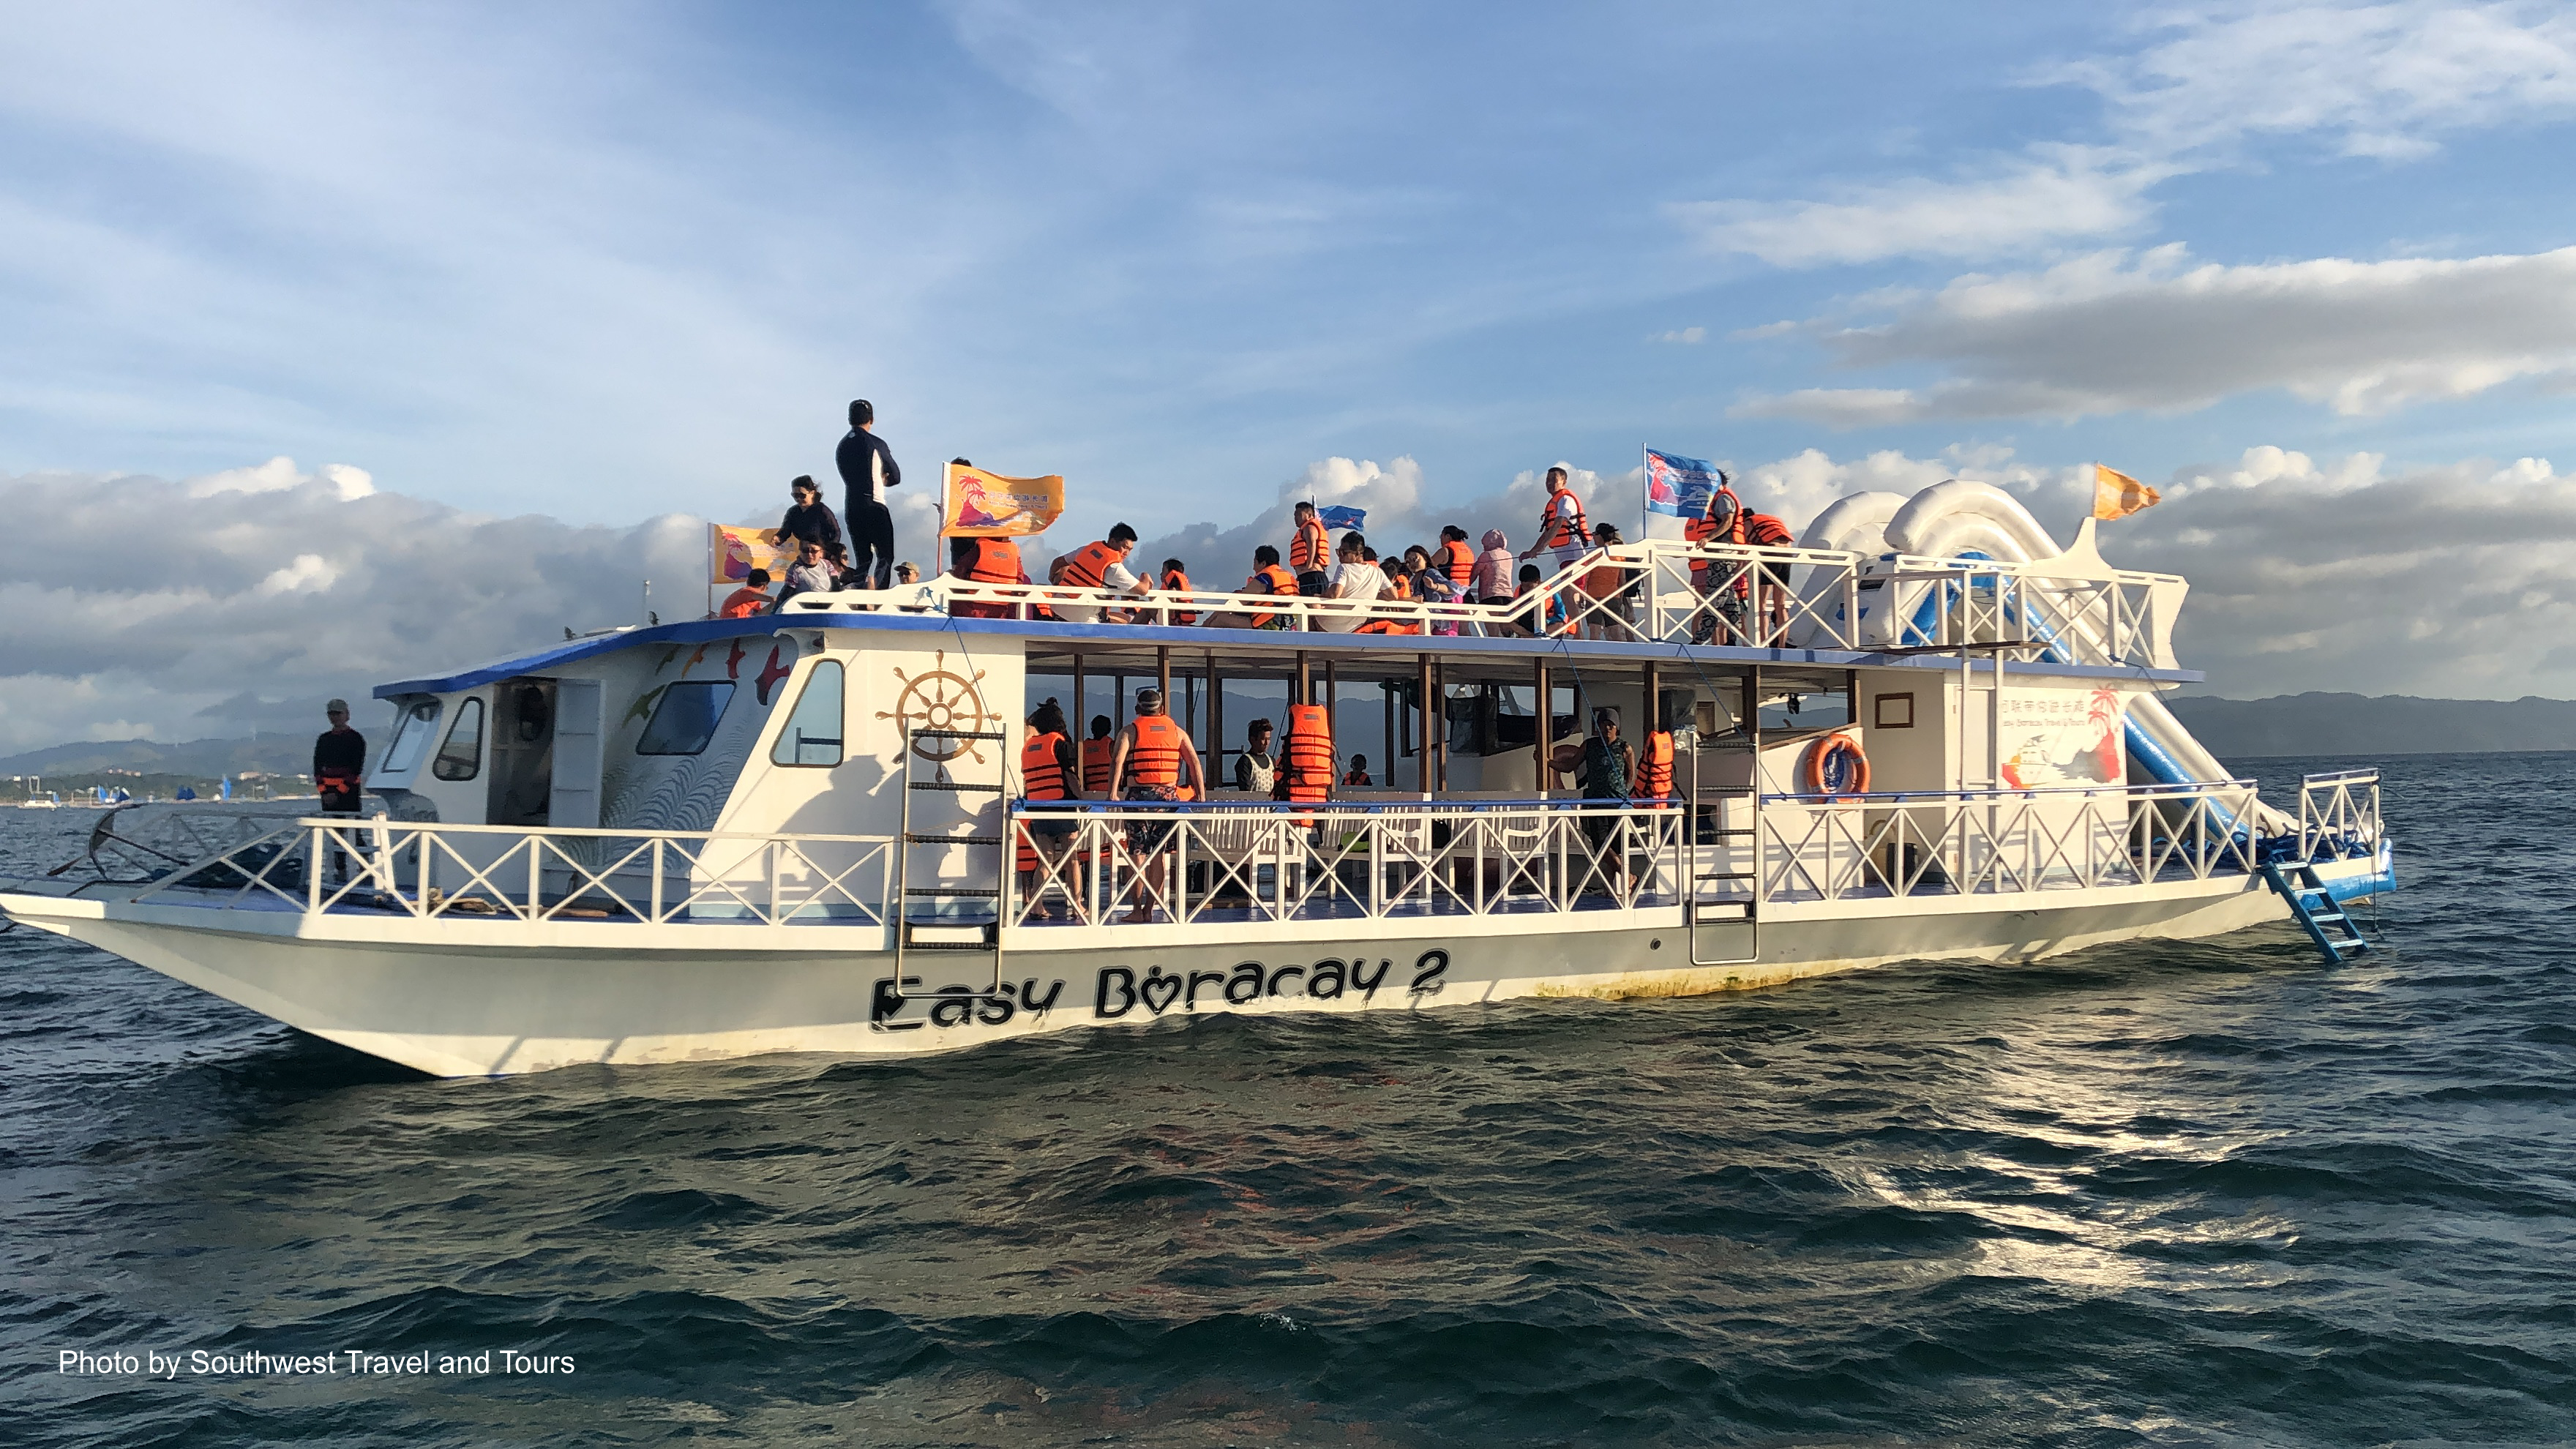 Cruisers onboard Boracay's party boat enjoying the fresh sea breeze and scenic views